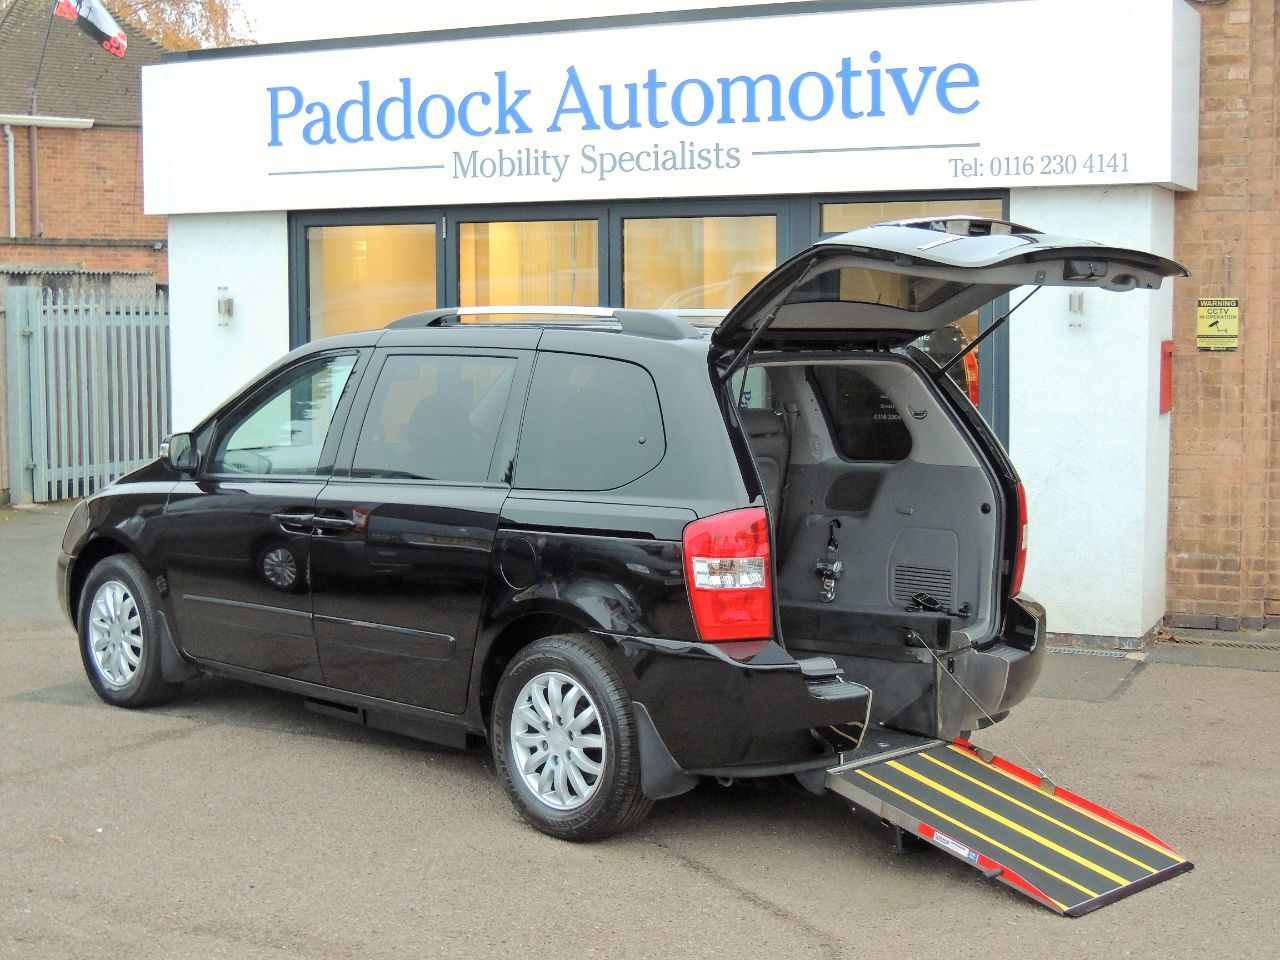 Kia Sedona 2.2 CRDi 3 Auto Disabled Wheelchair Adapted Vehicle WAV Wheelchair Adapted Diesel Black Mica